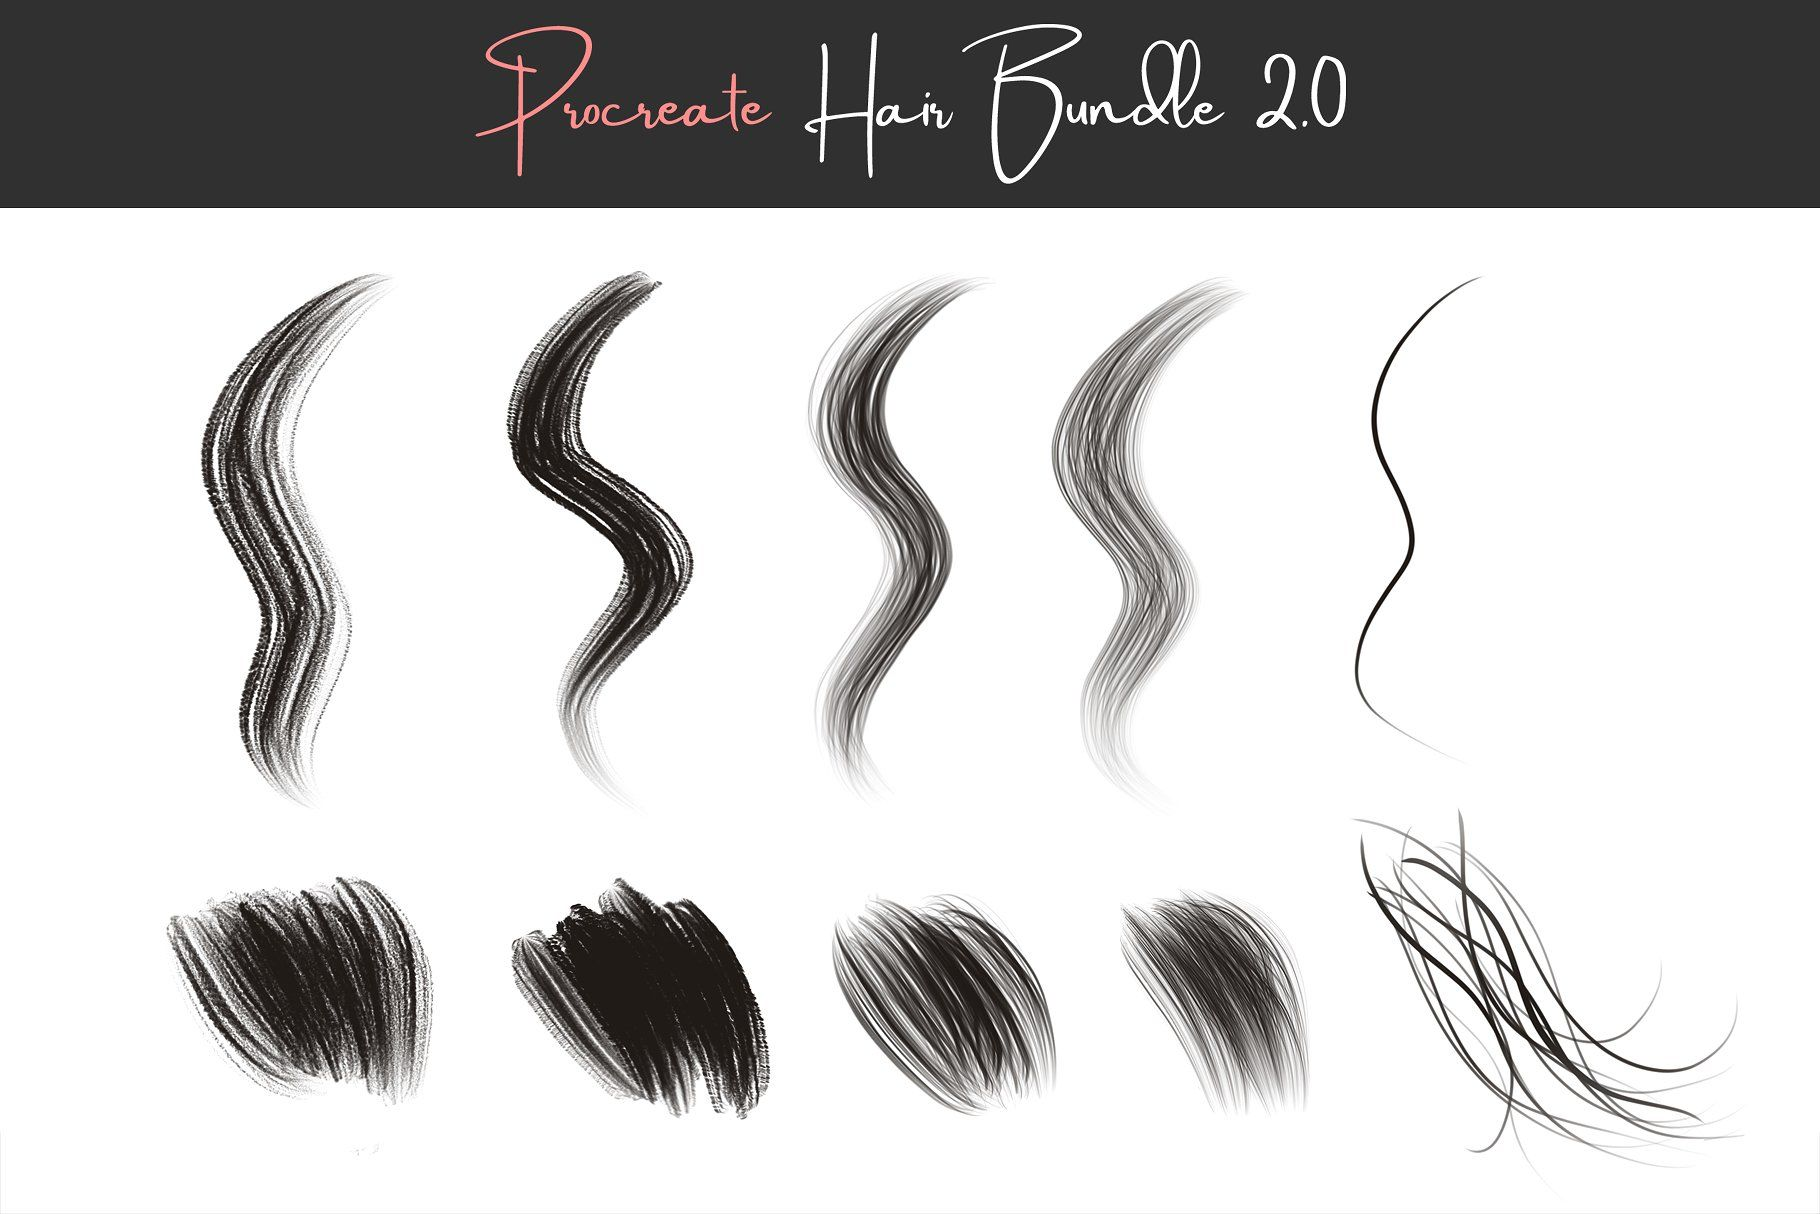 Procreate Hair Brushes 2 0 #Easy#painting#lot#simplify